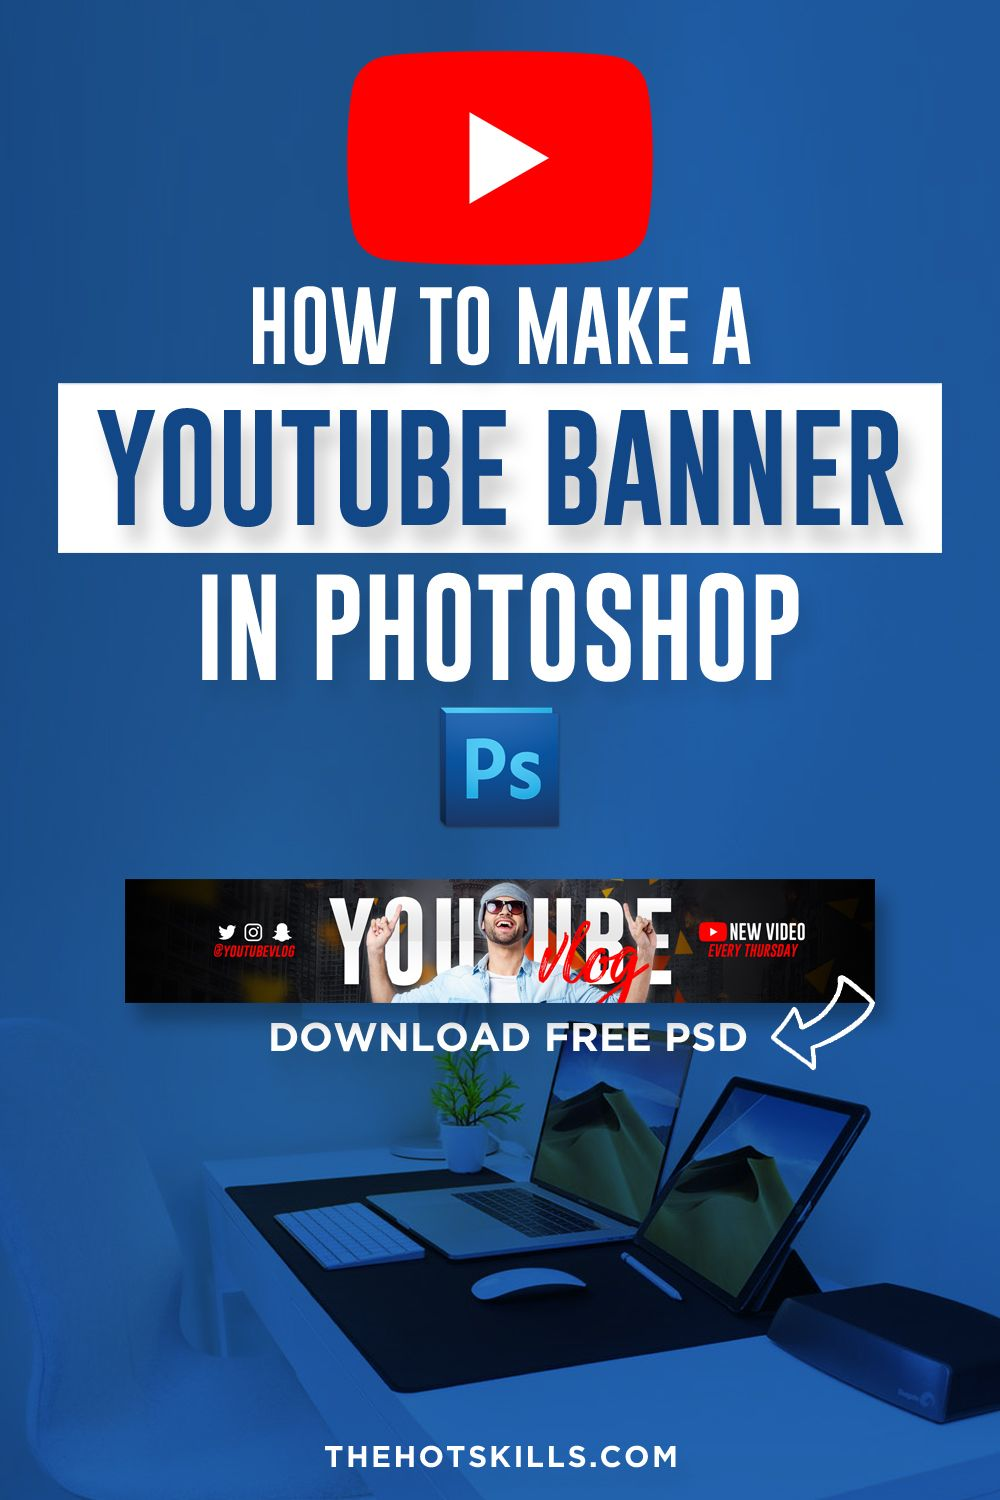 How To Make A Youtube Banner In Photoshop Guide 2021 Youtube Banners Photoshop Youtube